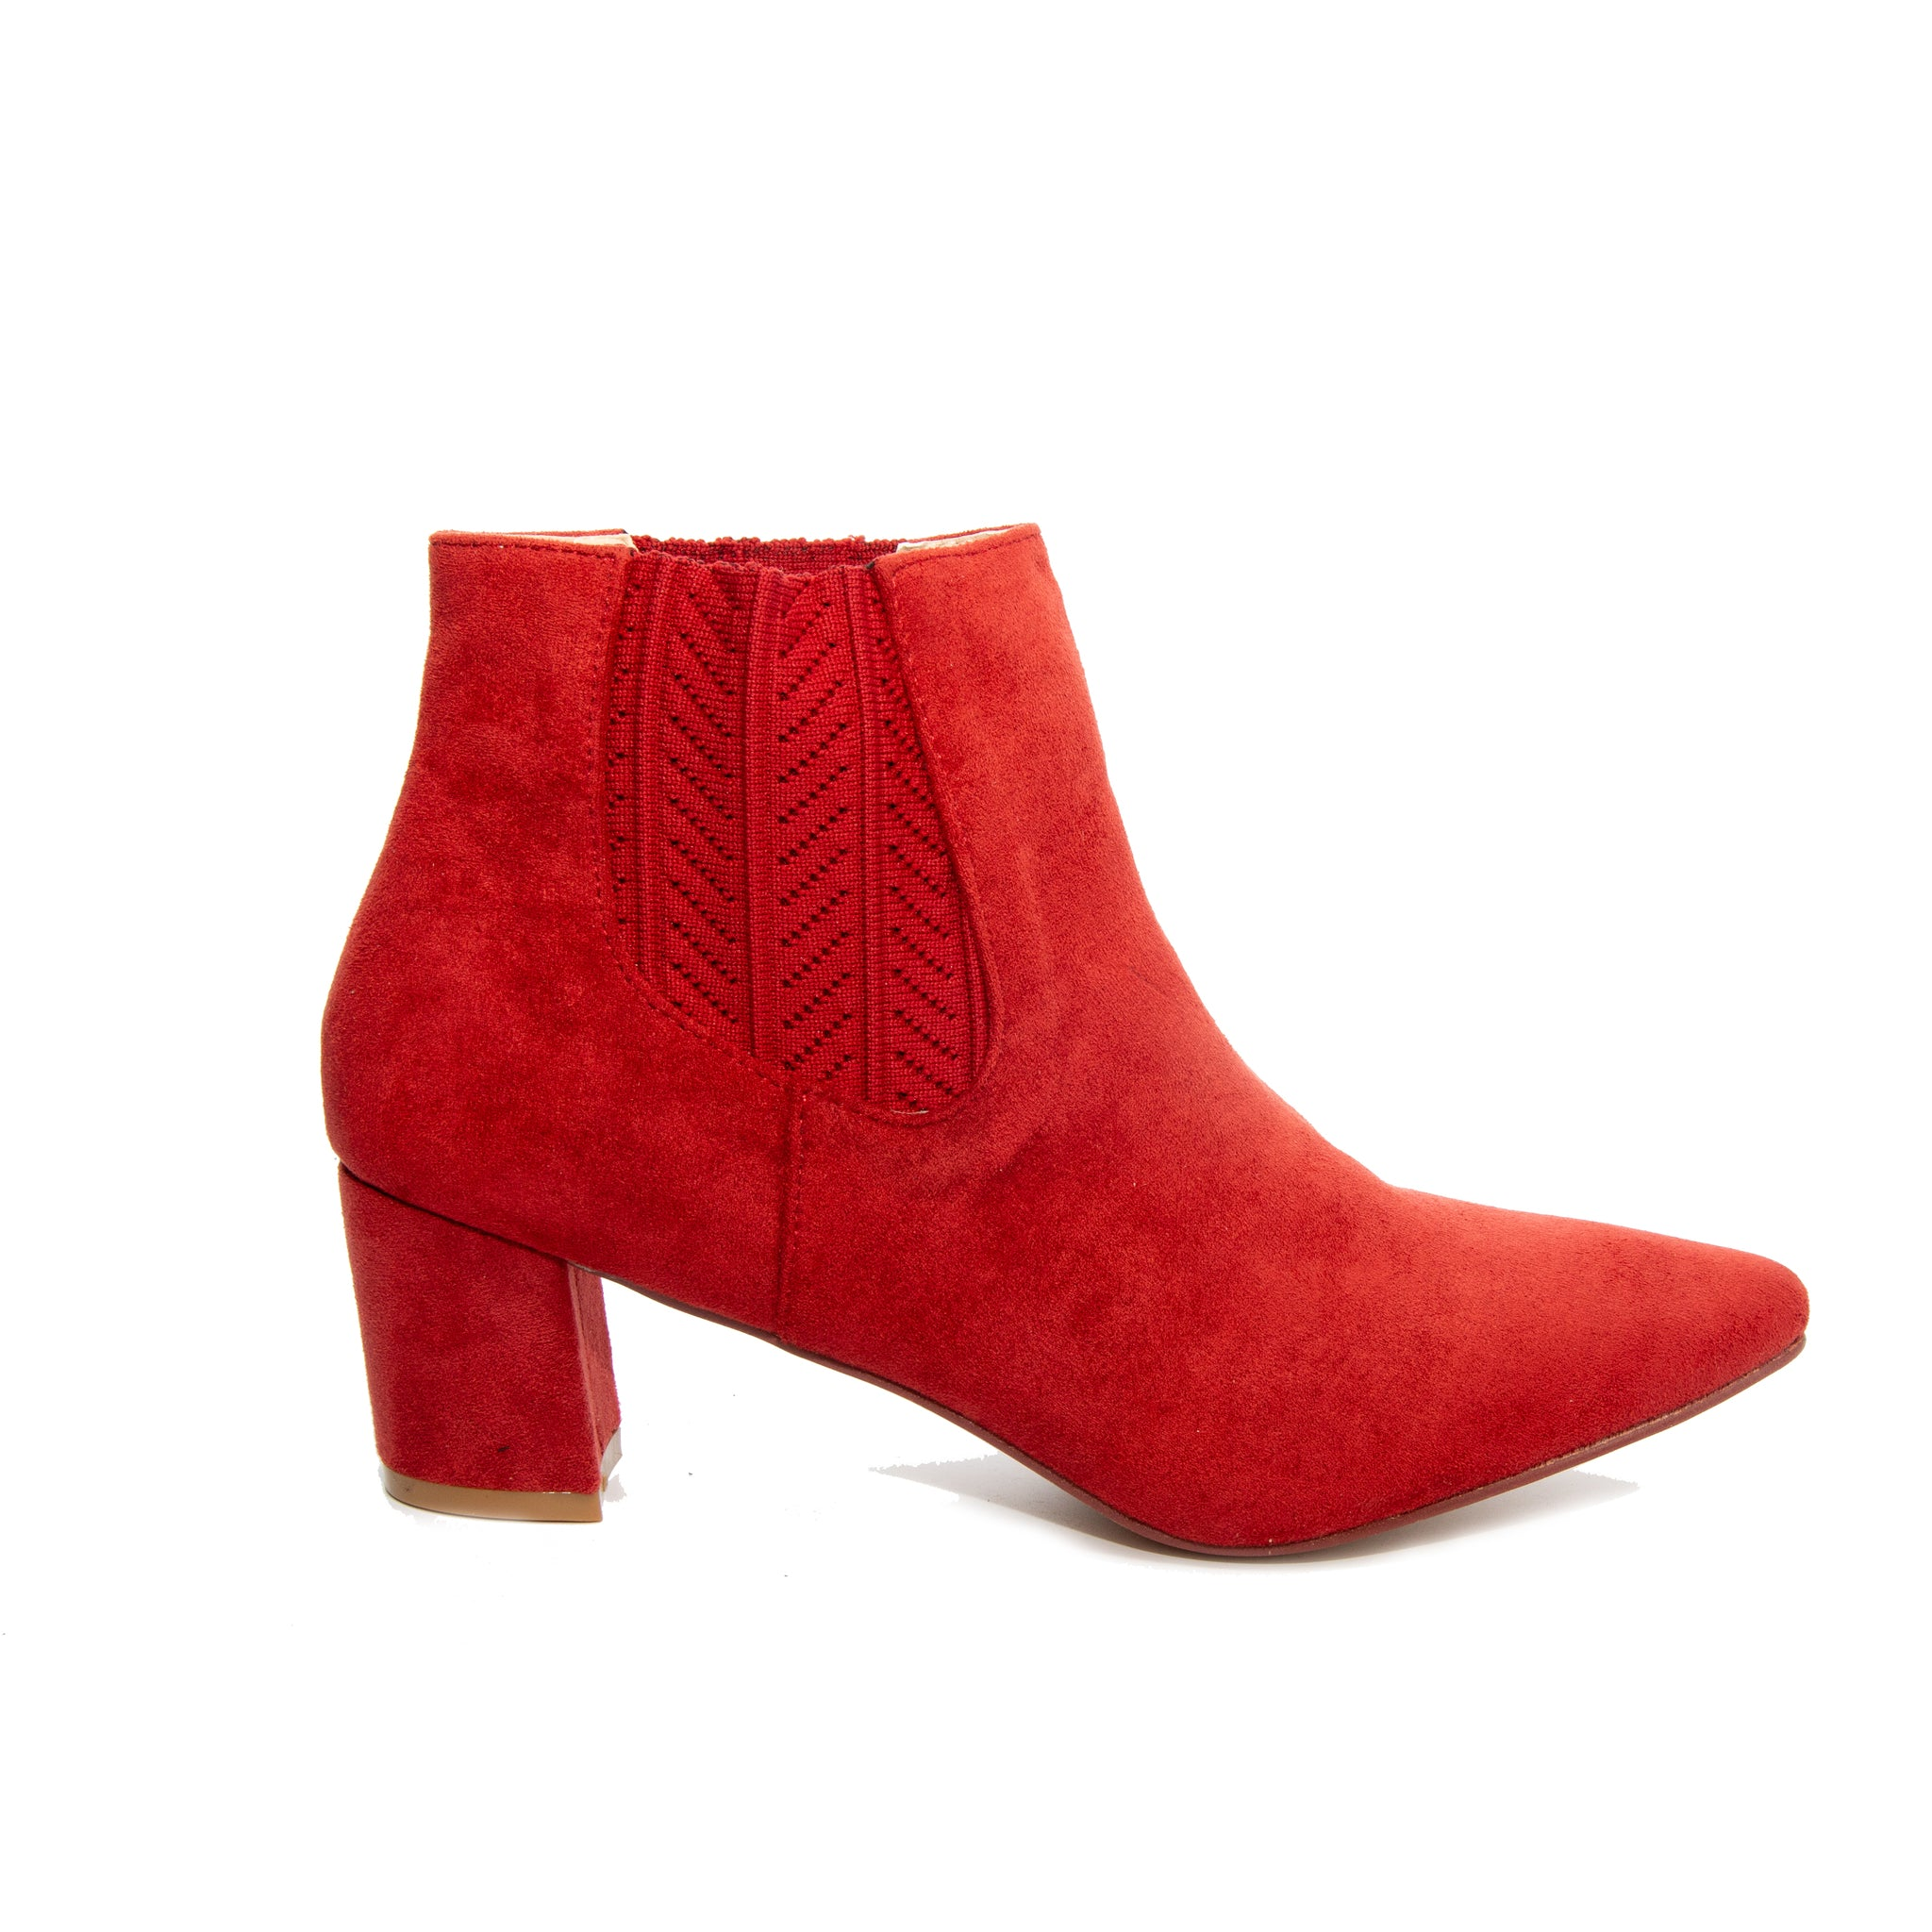 Chloe by Dolce Nome | Faux Suede Ankle Boots in Rust (side view)